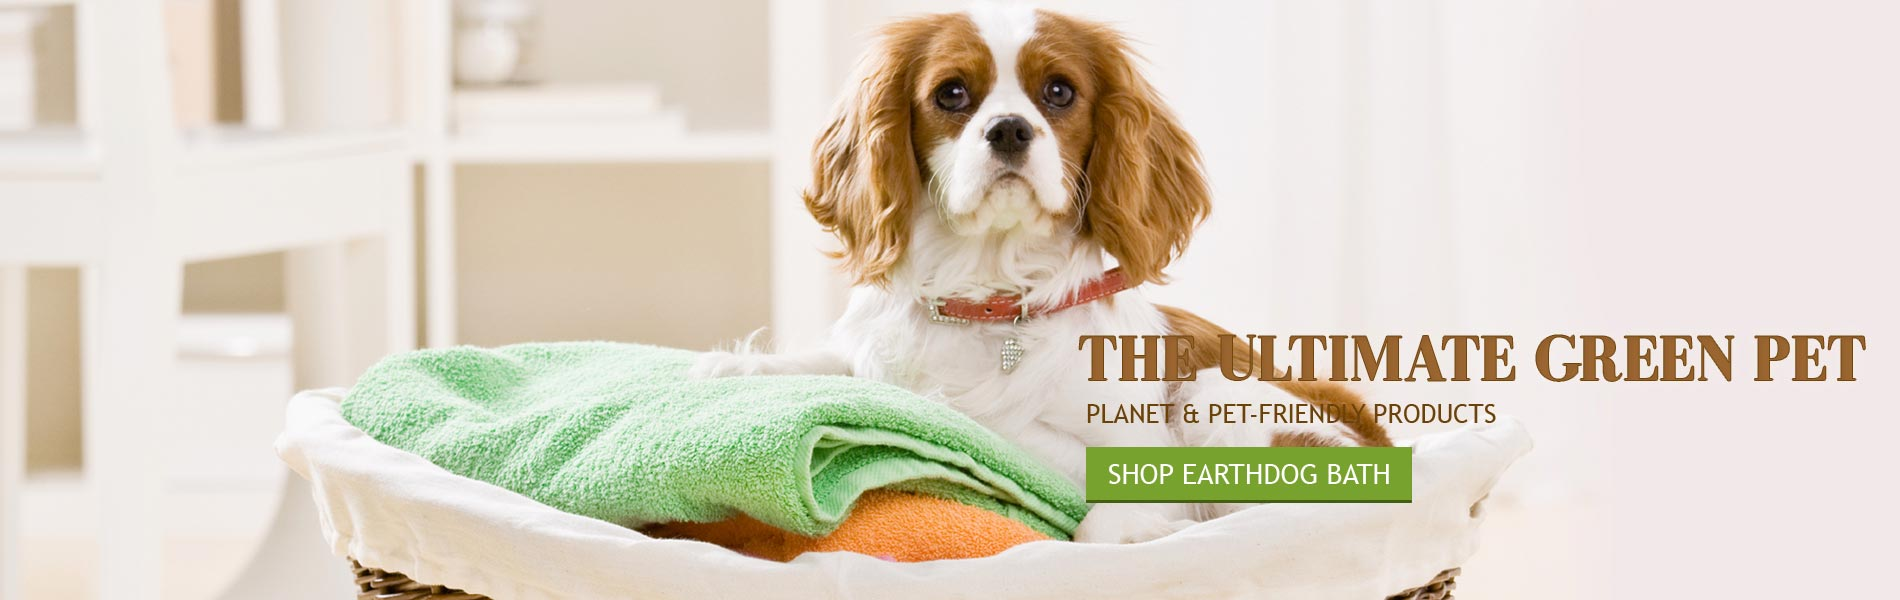 The Ultimate Green Pet - Planet and Pet-Friendly Products